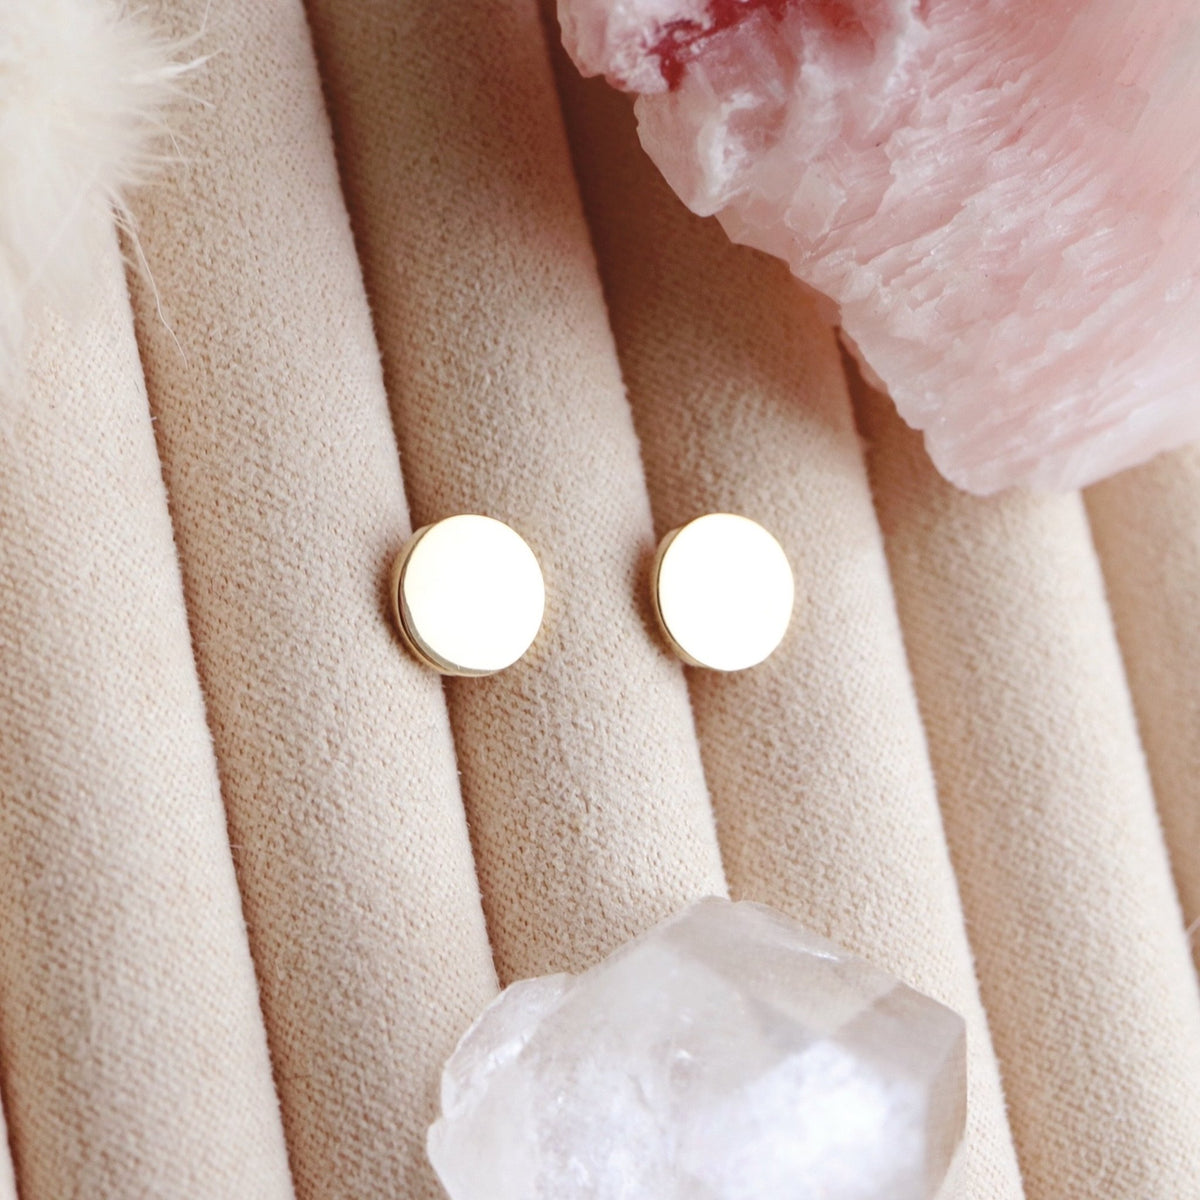 MINI POISE CIRCLE STUDS - GOLD - SO PRETTY CARA COTTER